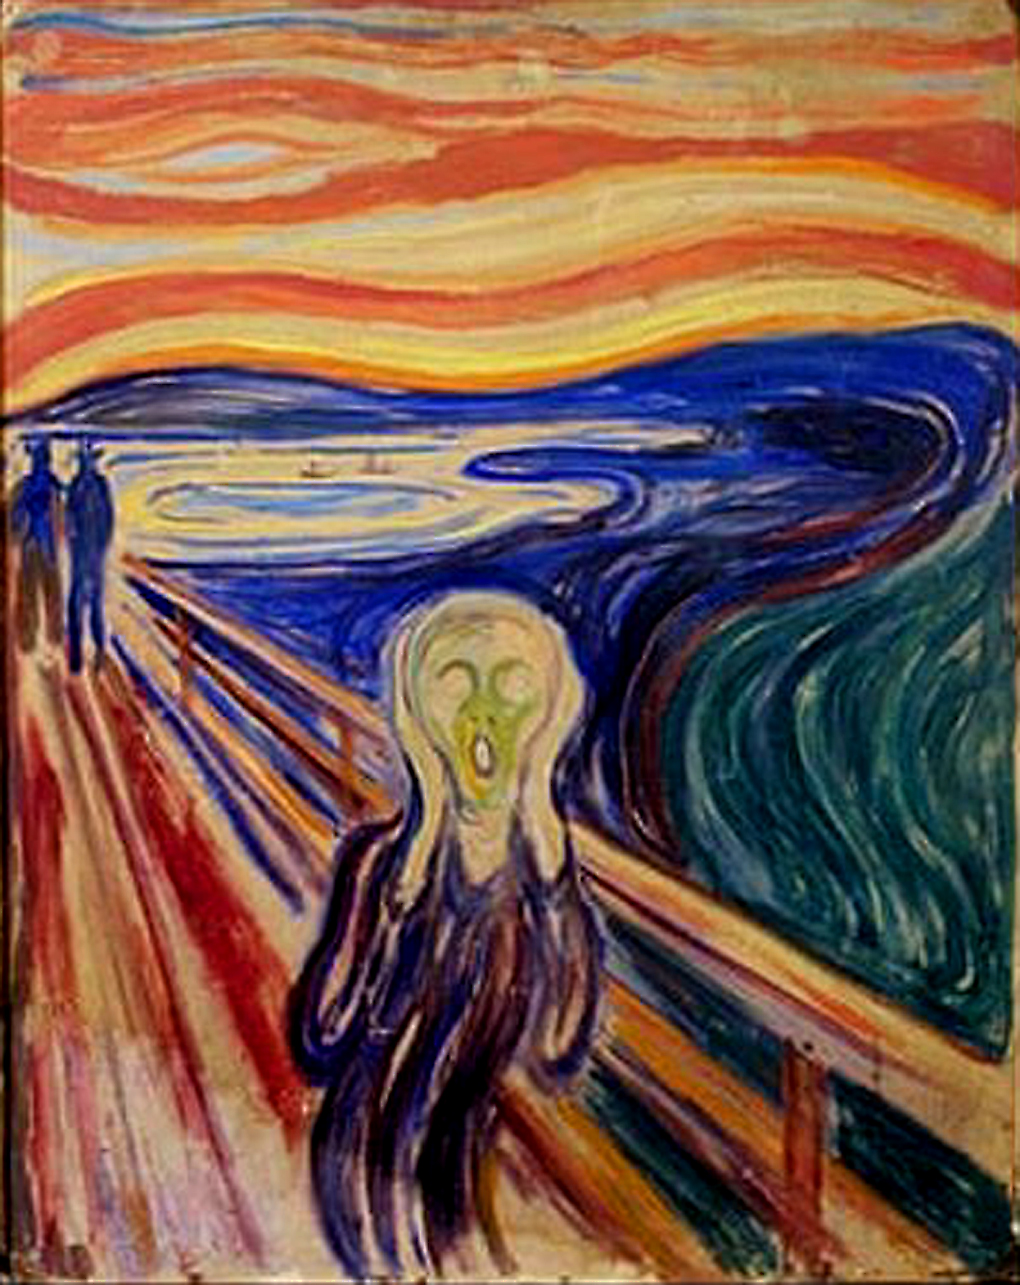 Edvard Munch's The Scream. Image Credit: Stian Lysberg / AFP / Getty Images, 2020.